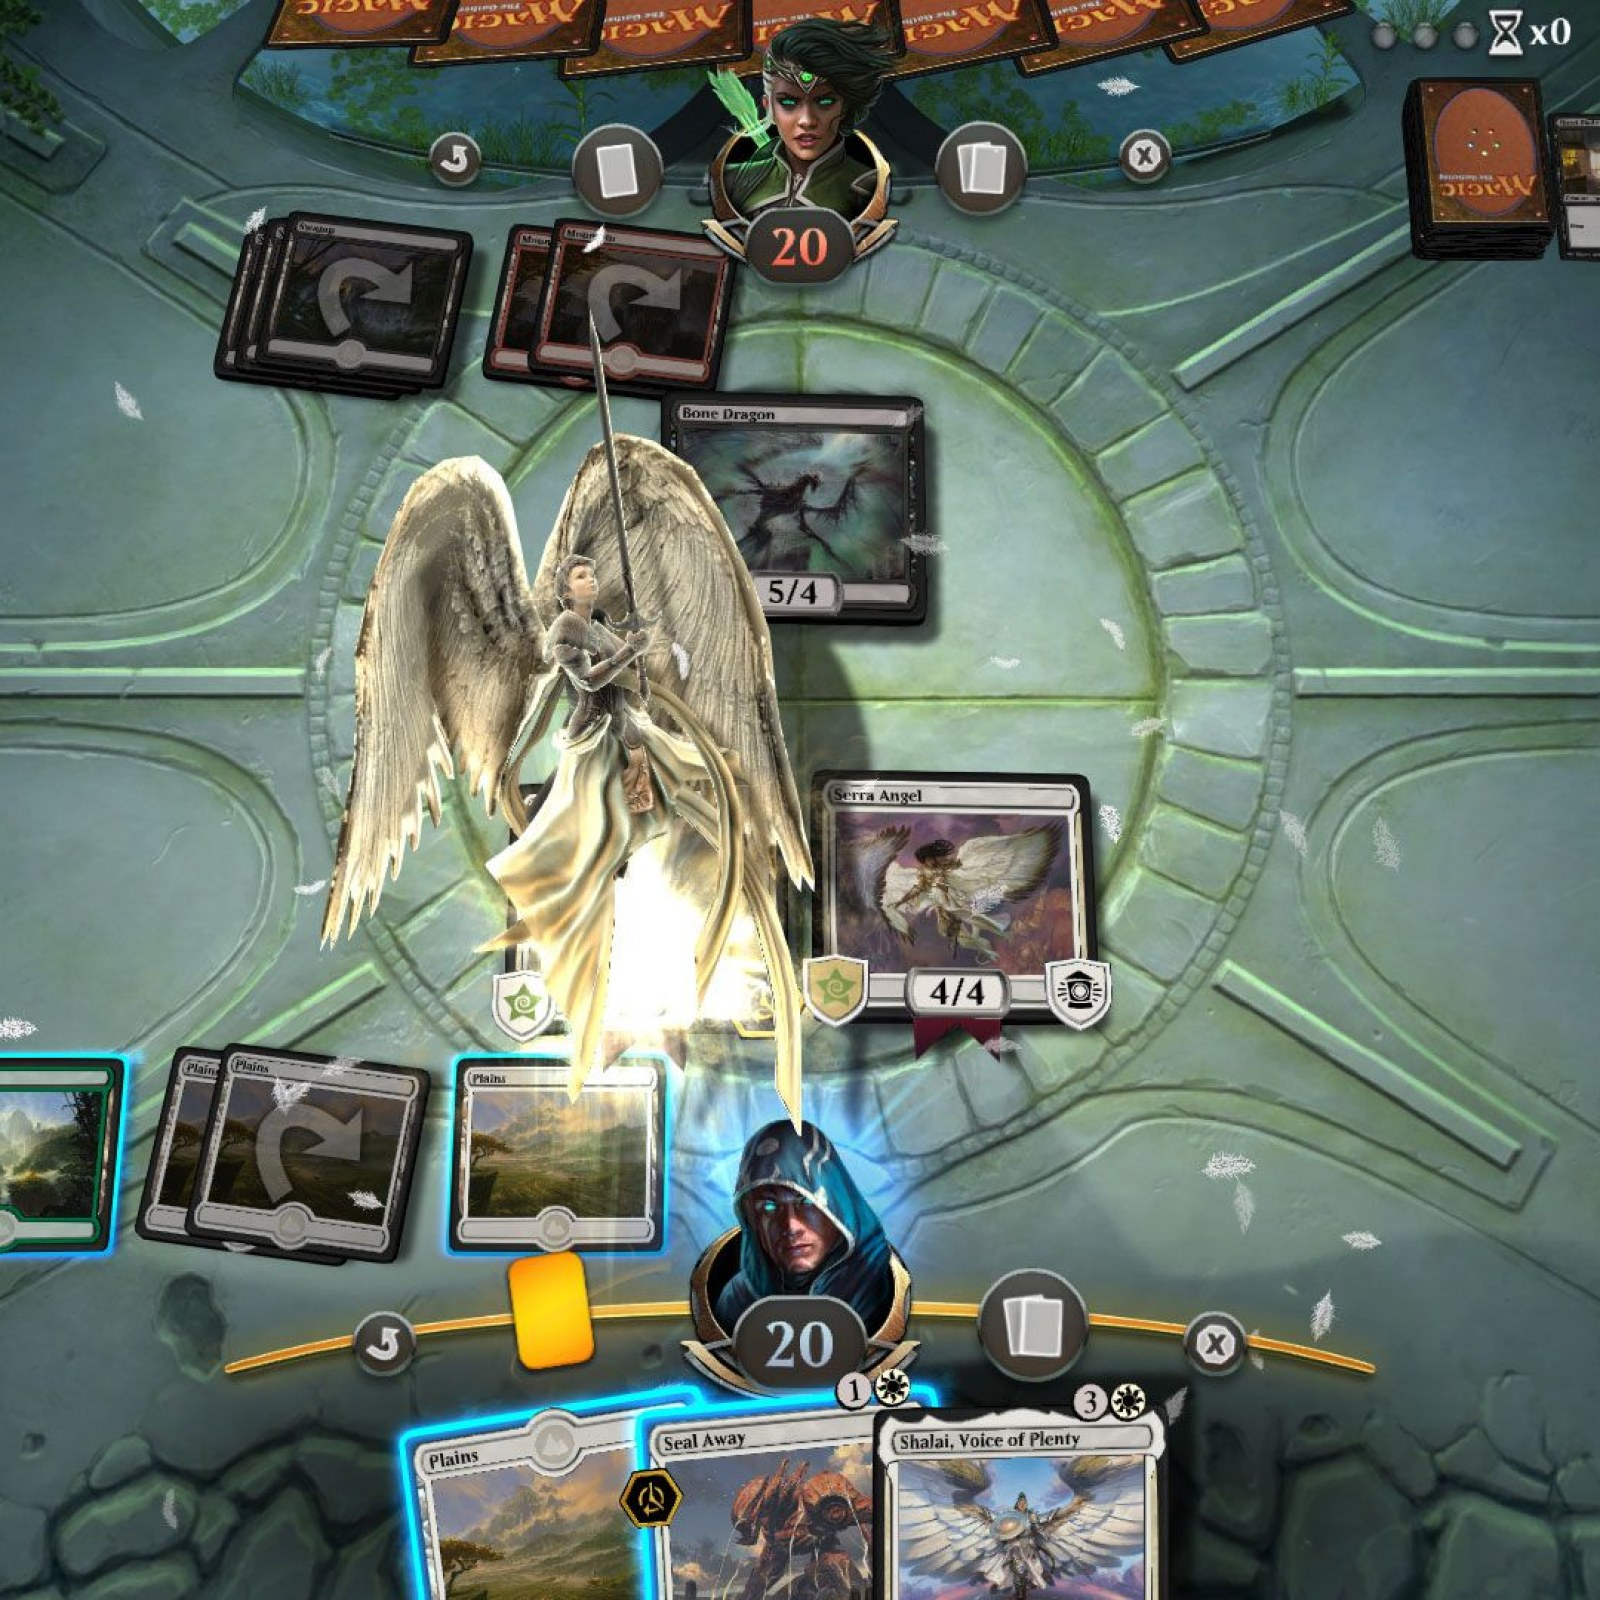 MTG Arena' Hands-on Impressions: Easy Interface Makes